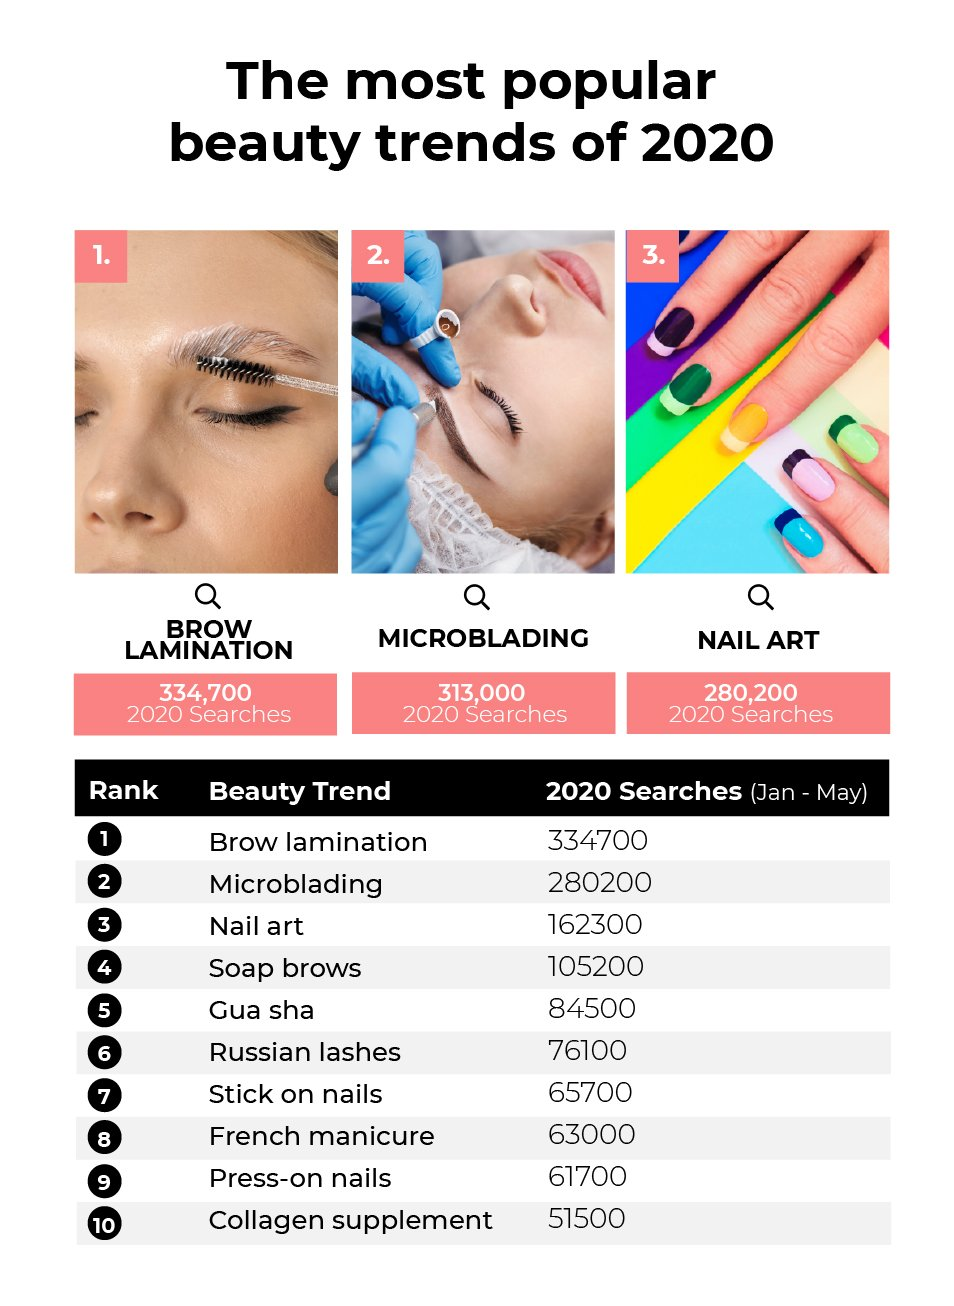 The most popular beauty trends of 2020: Brow Lamination (334,700 searches), Microblading (313,000 searches) and Nail Art (280,200 searches)